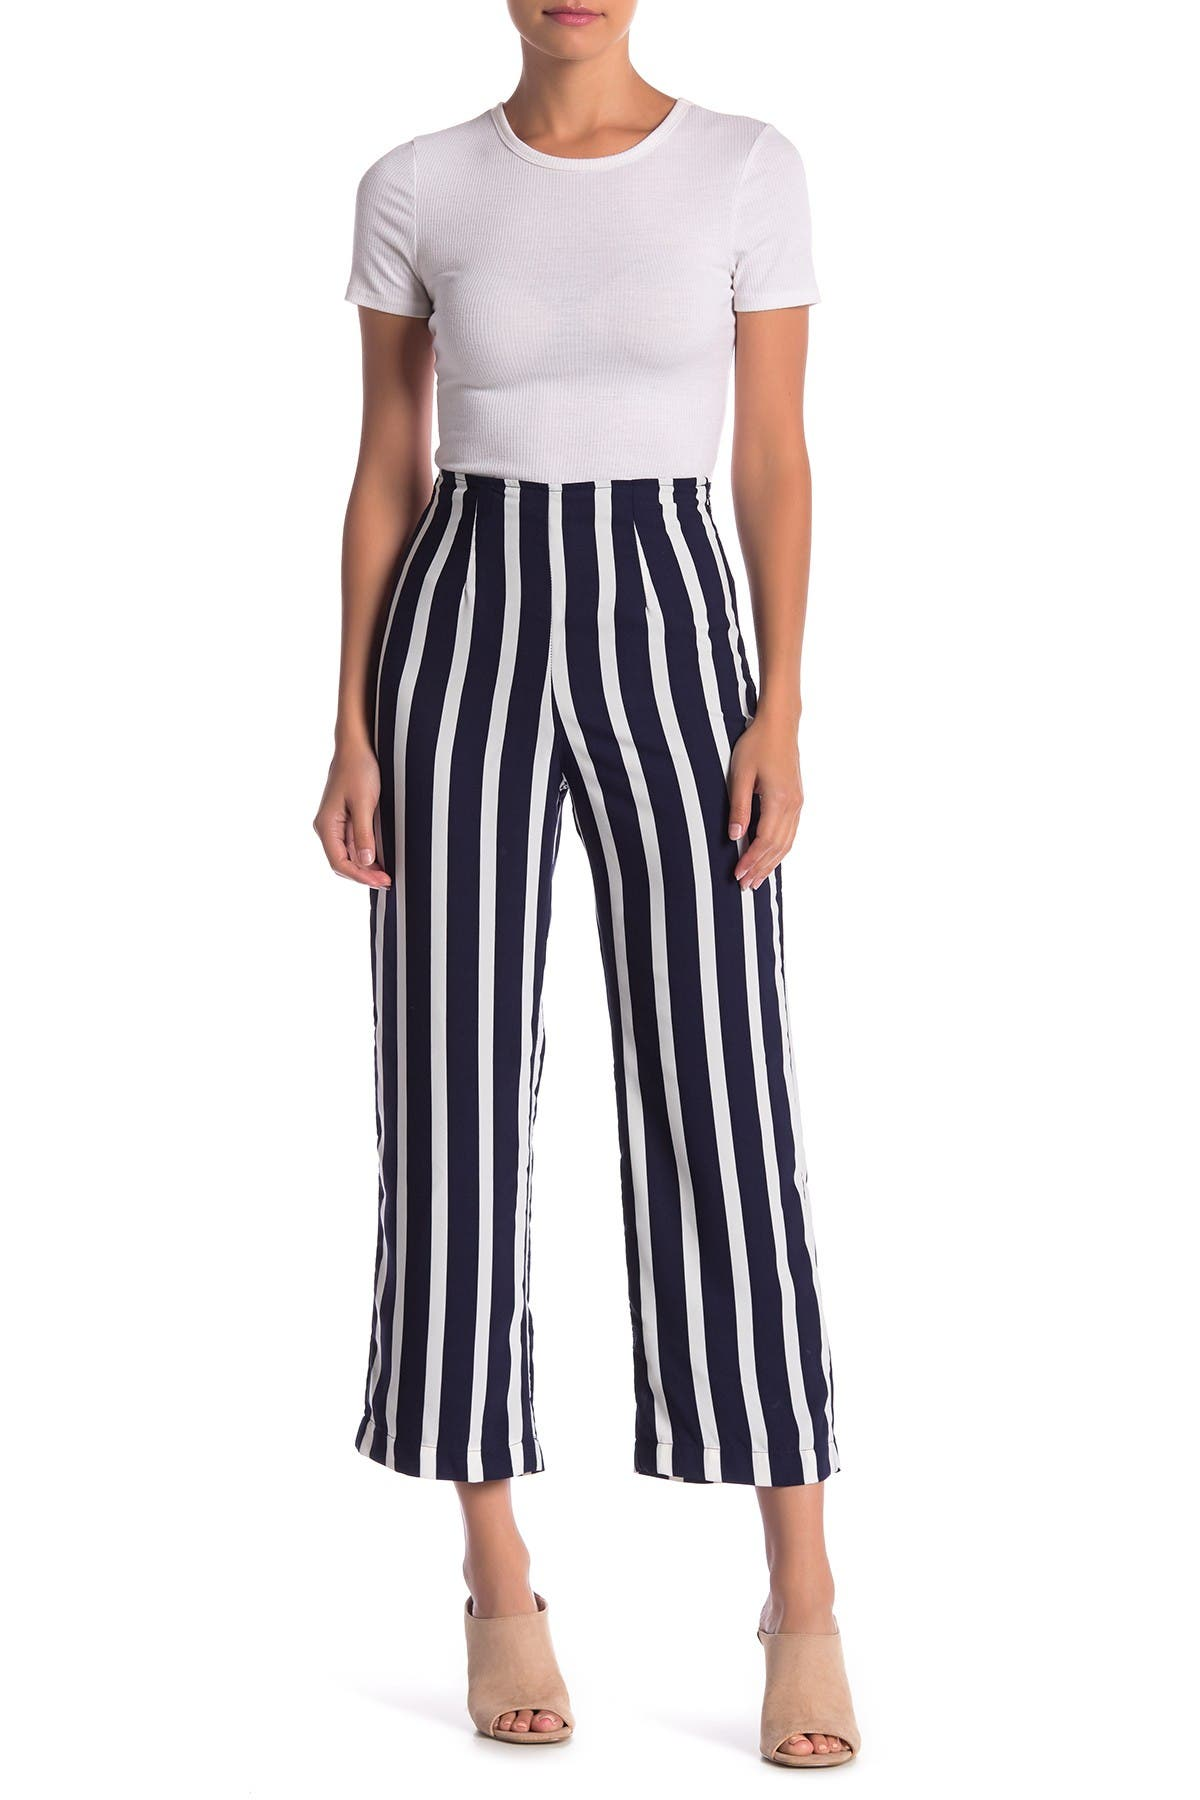 Image of dee elly Striped Palazzo Pants